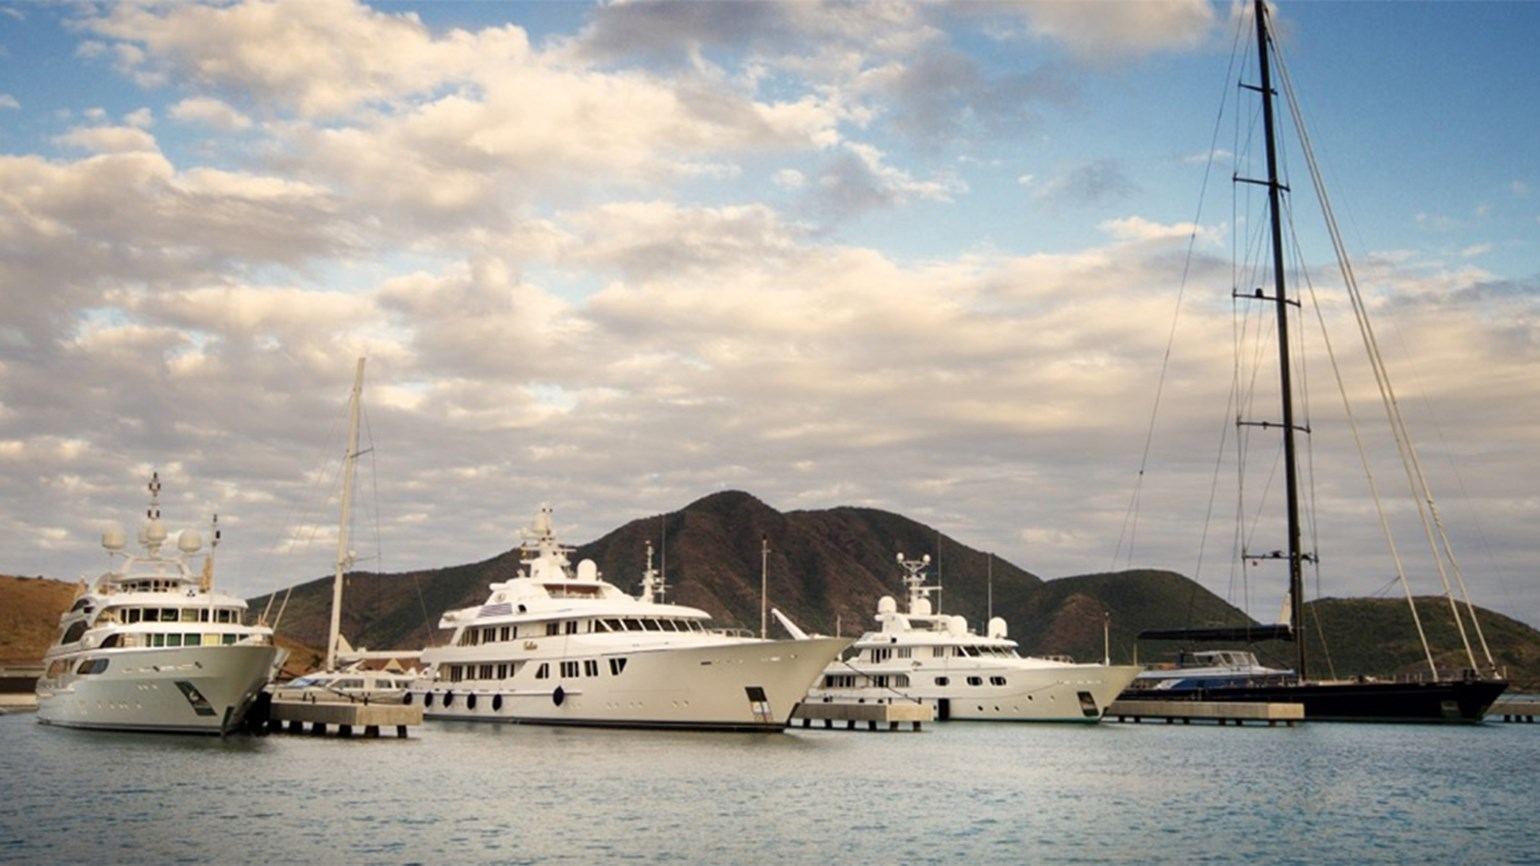 Shops and marina open at Christophe Harbour in St. Kitts